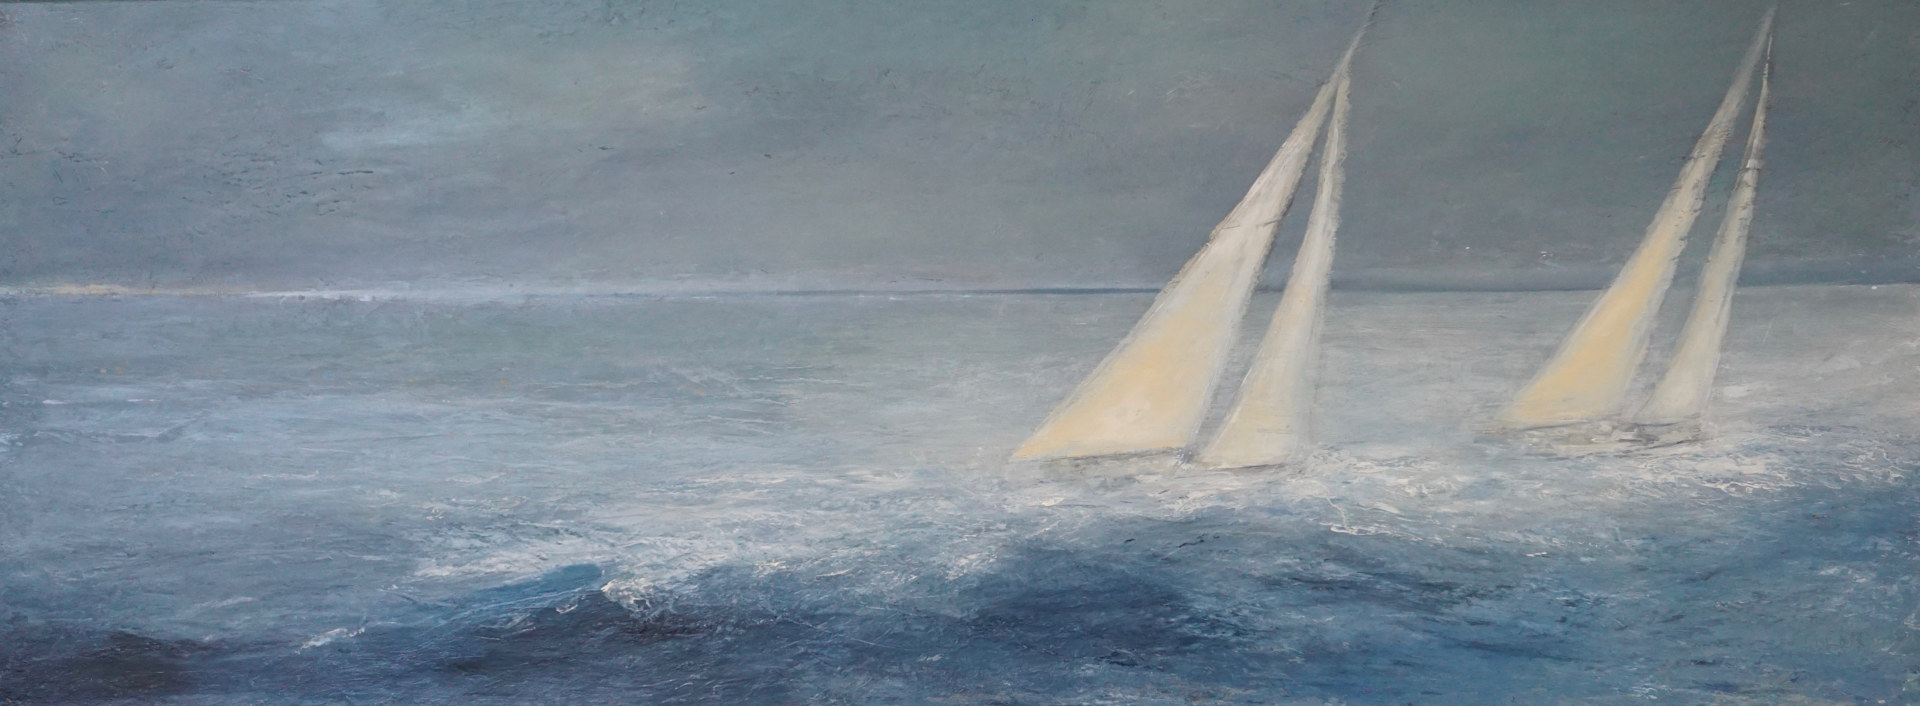 Oil painting The Last Leg @ Thomas Henry Gallery Nantucket by Nella Lush